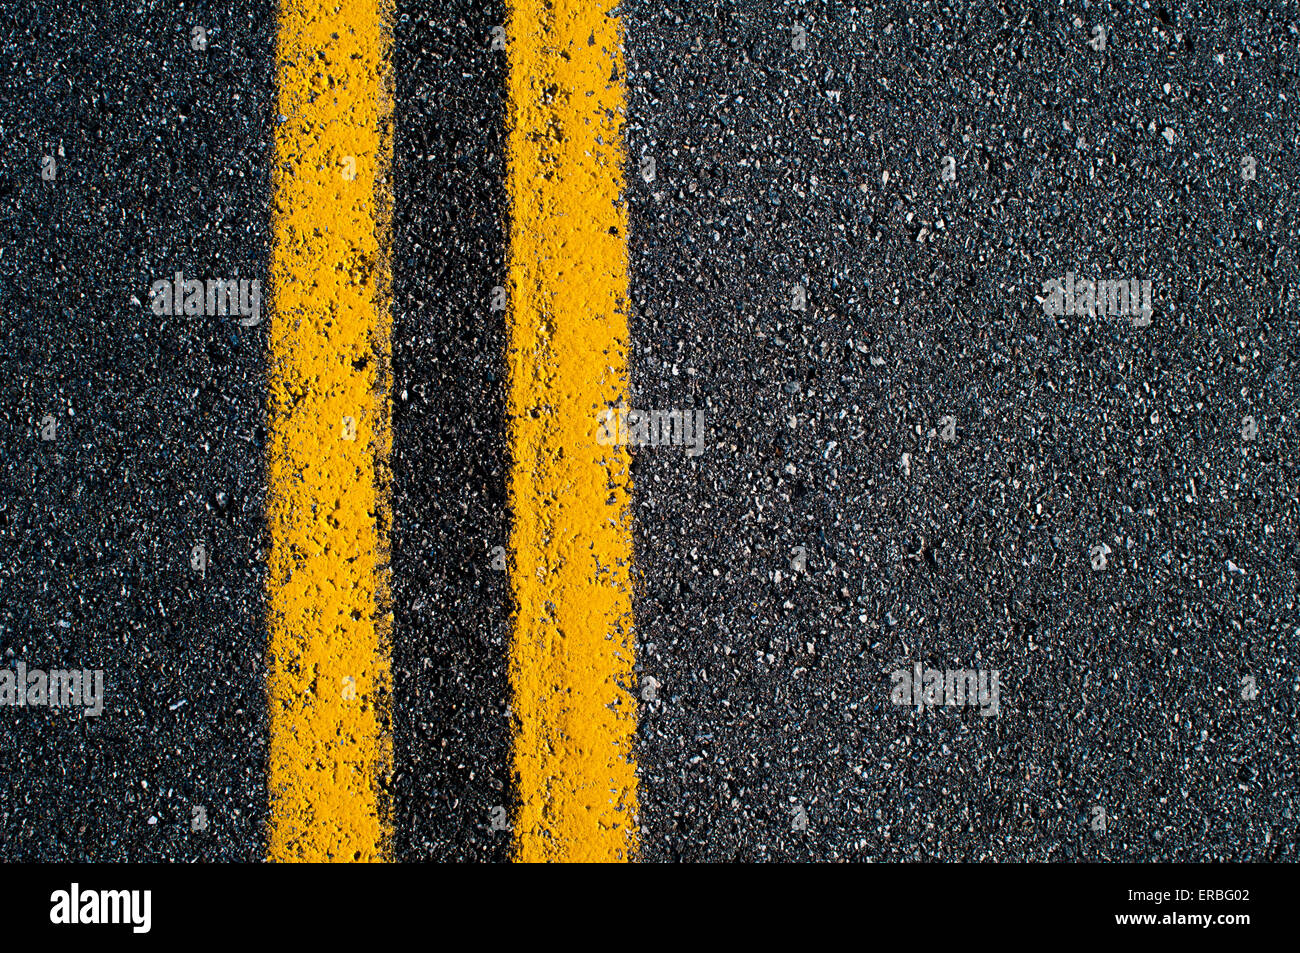 A double-yellow 'no passing' line on an asphalt road. - Stock Image